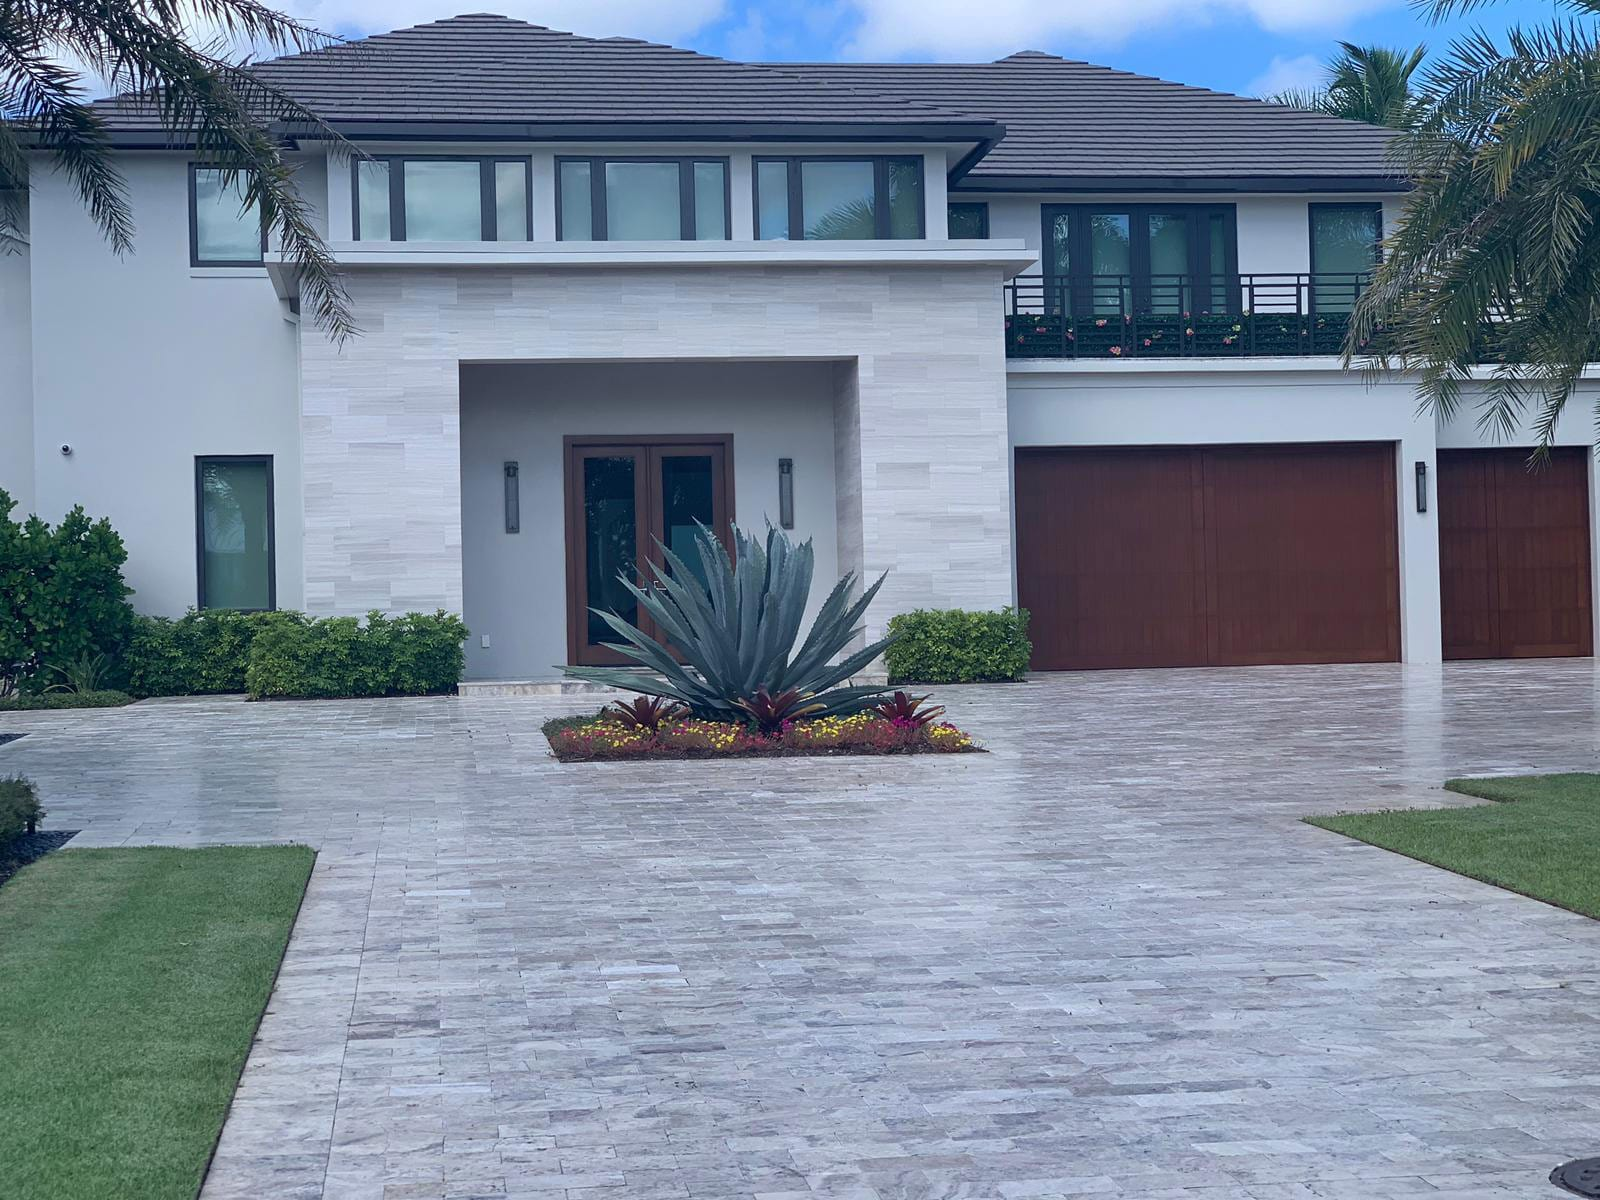 Stoneline-Group-Silver-Travertine-Marble-Collection-Marble-Paver-walkway-driveway-design-Pictures